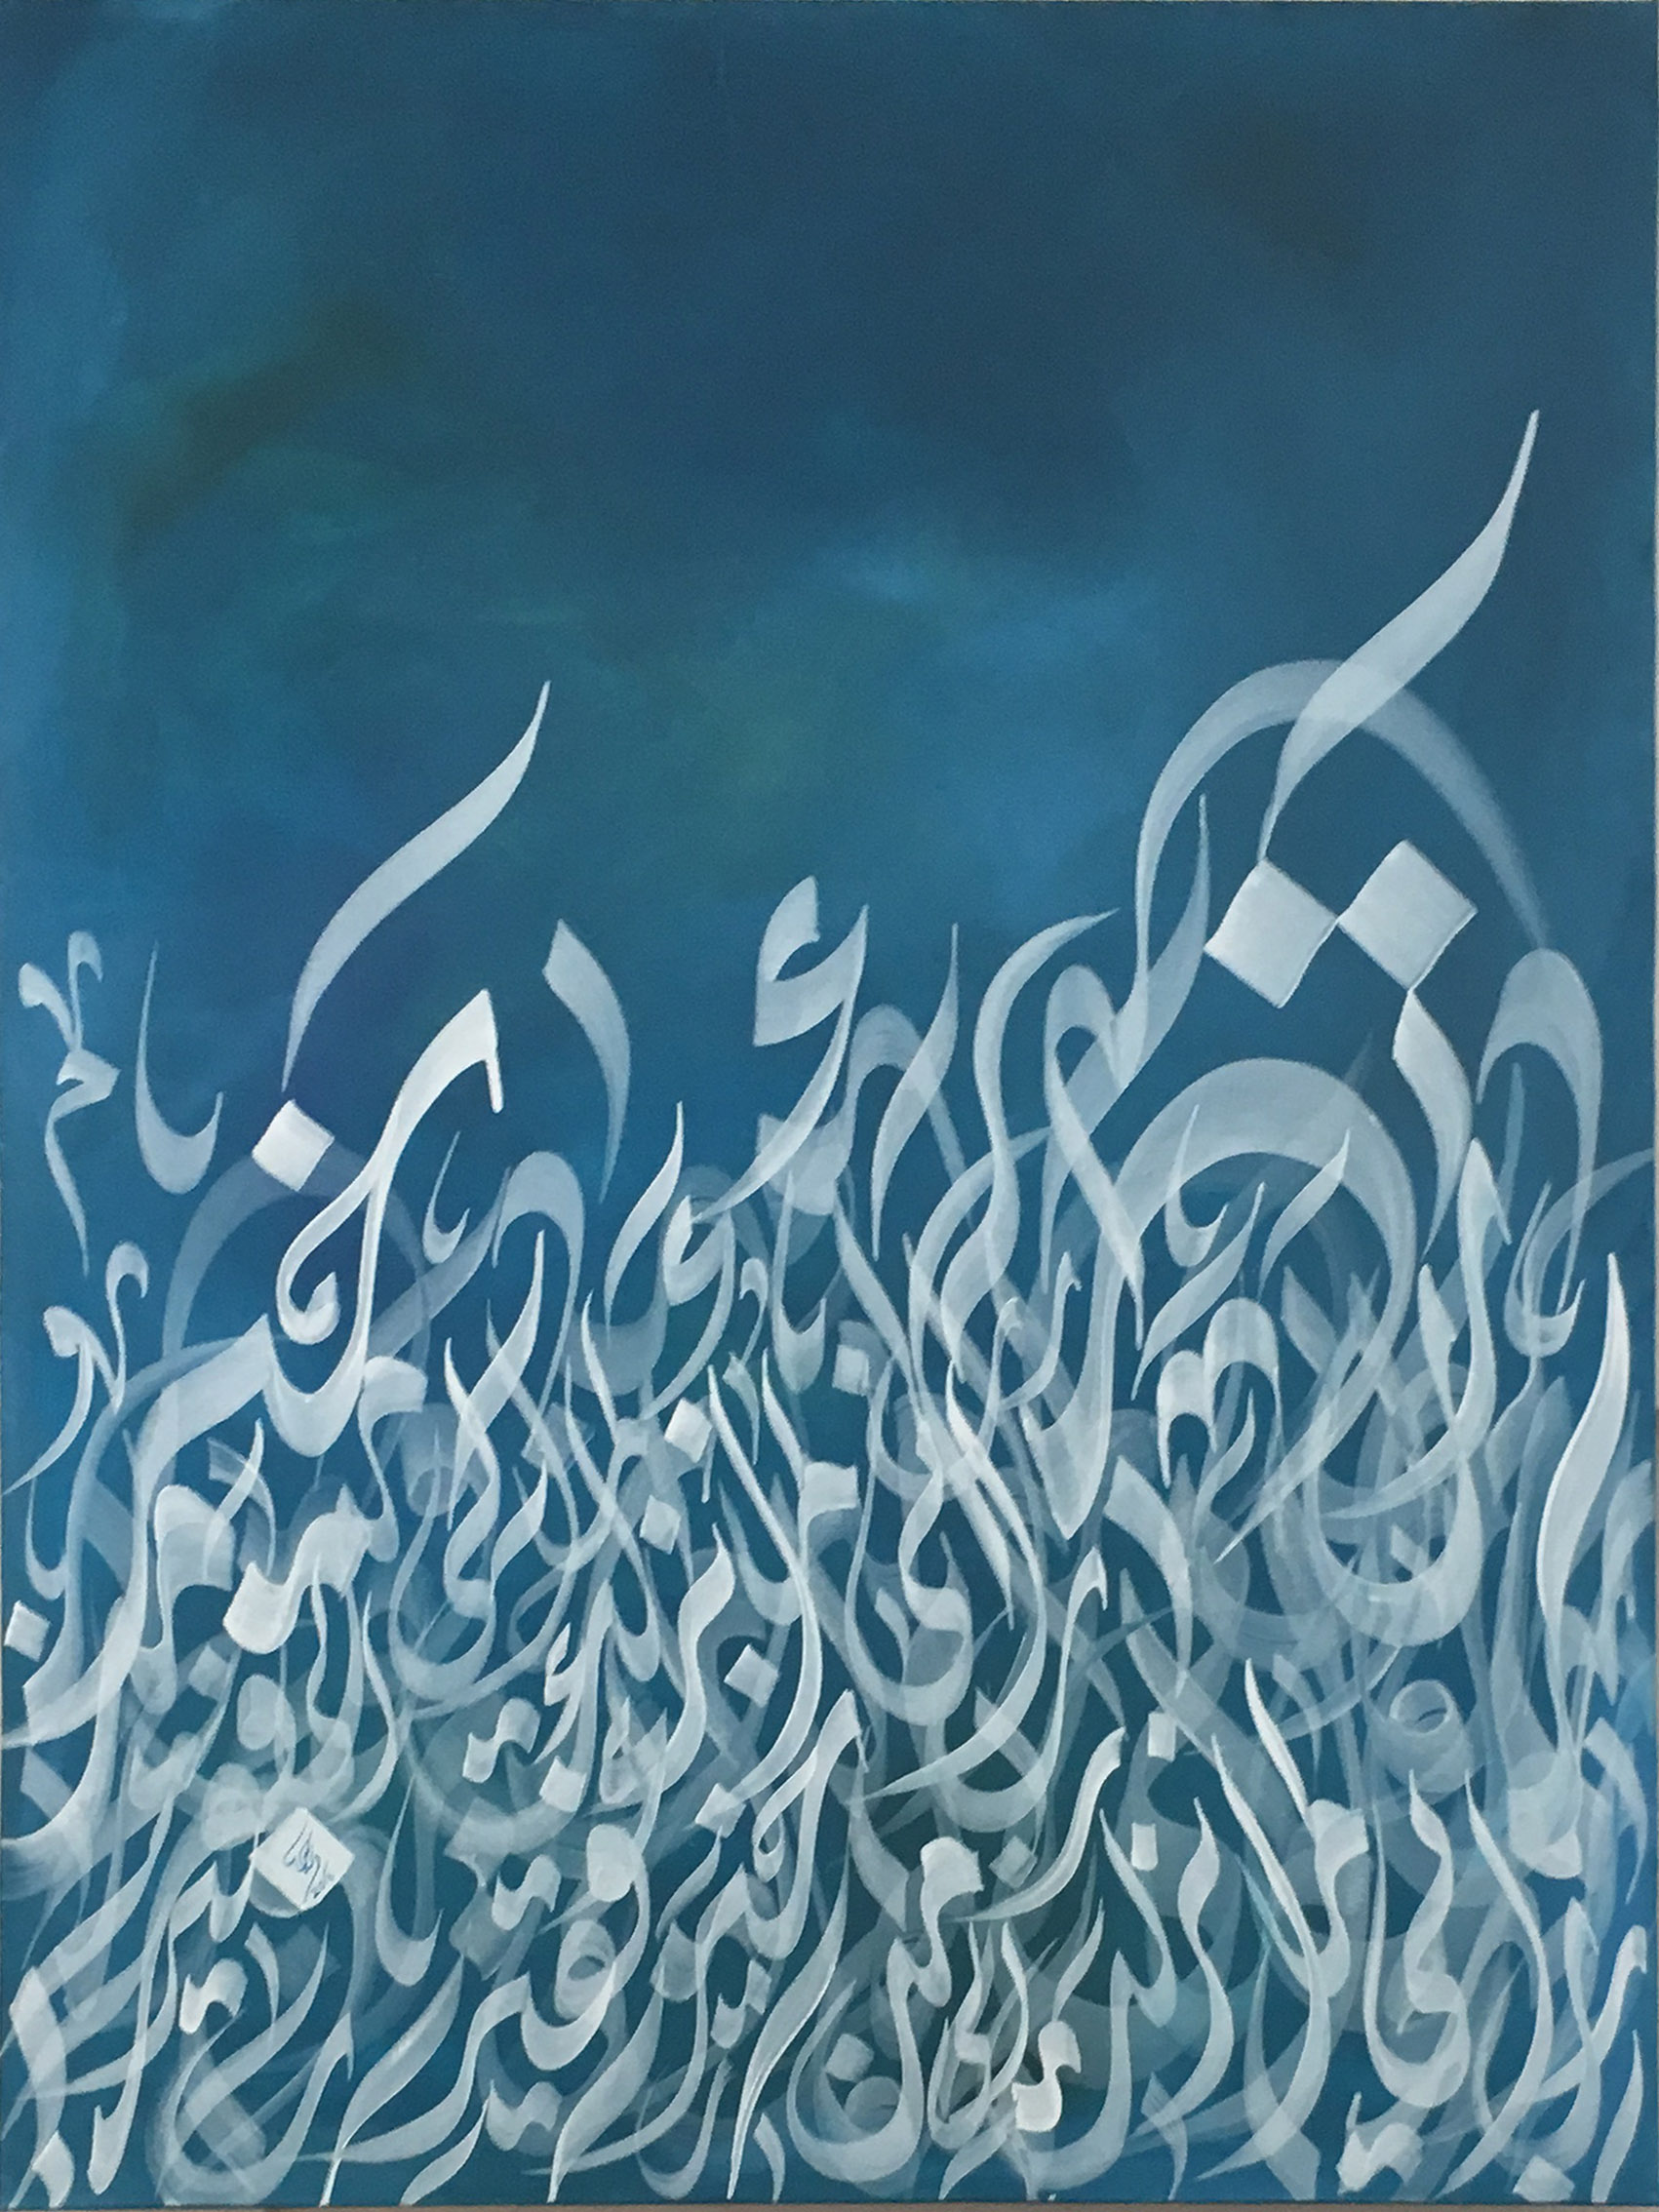 "In Dire Need ""My Lord, I have need of whatever good you send me"" (The Quran 28:24 